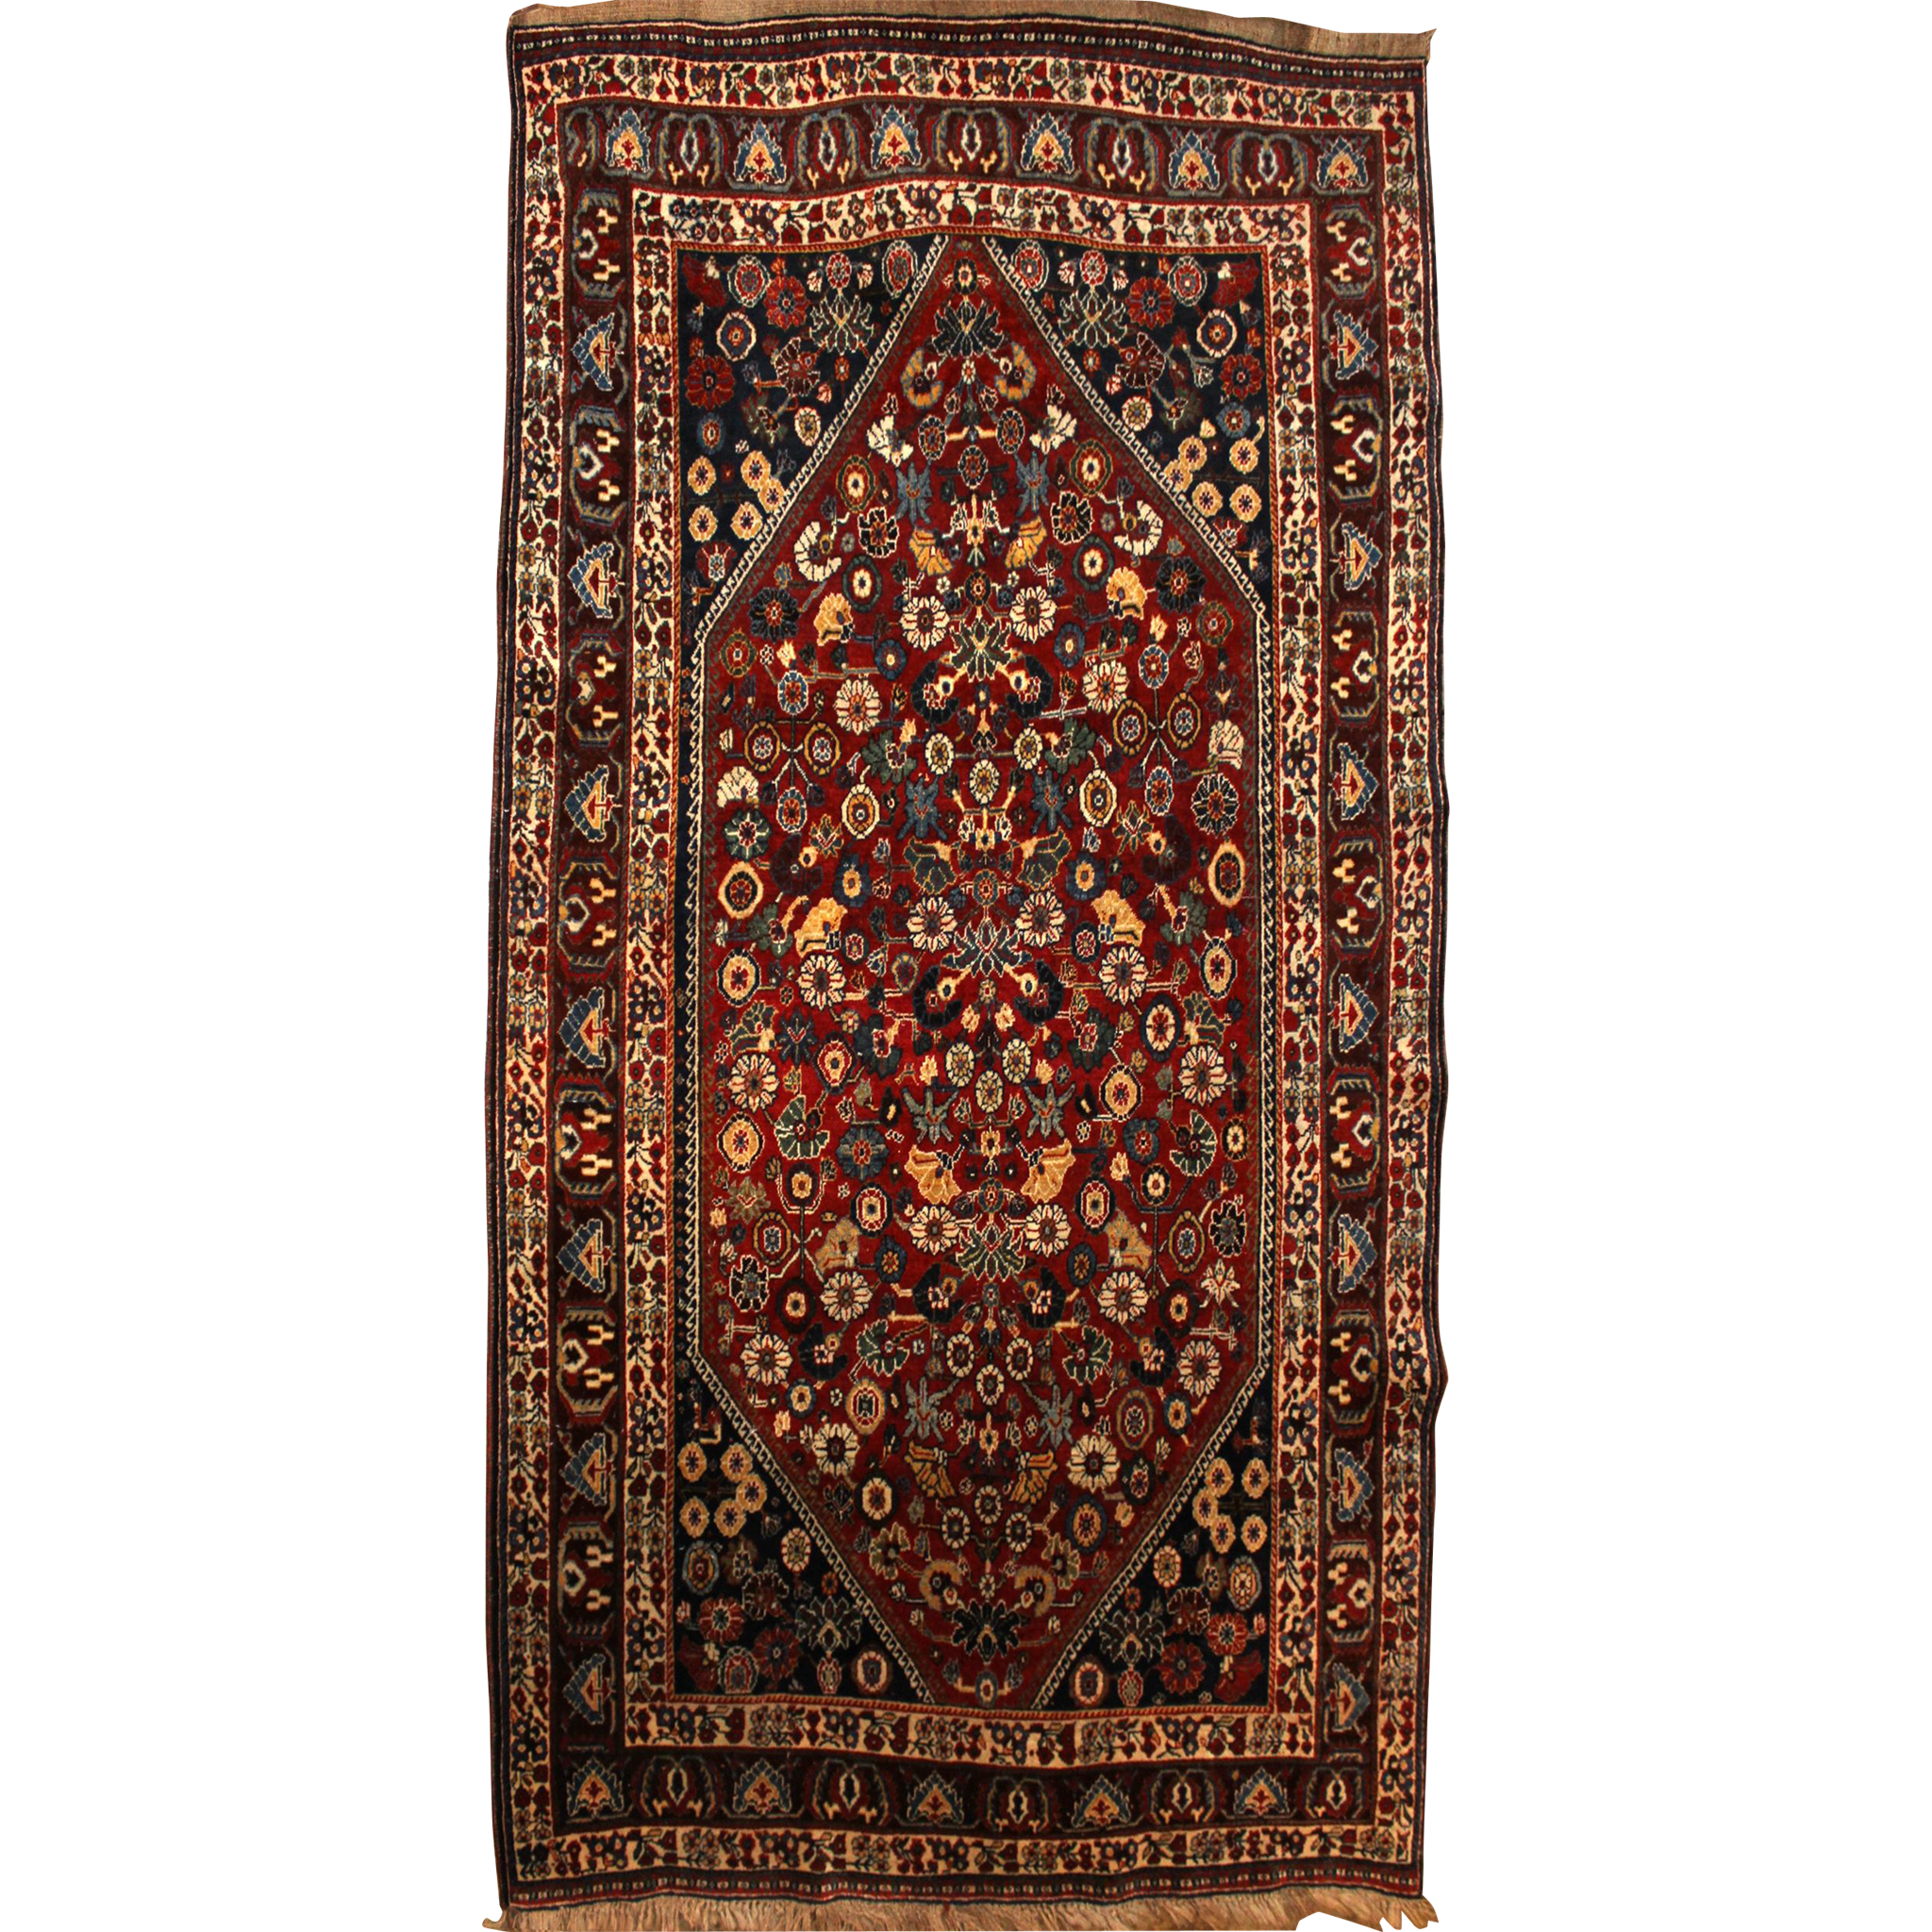 Kashkuli Scatter Rug or Carpet circa 1930